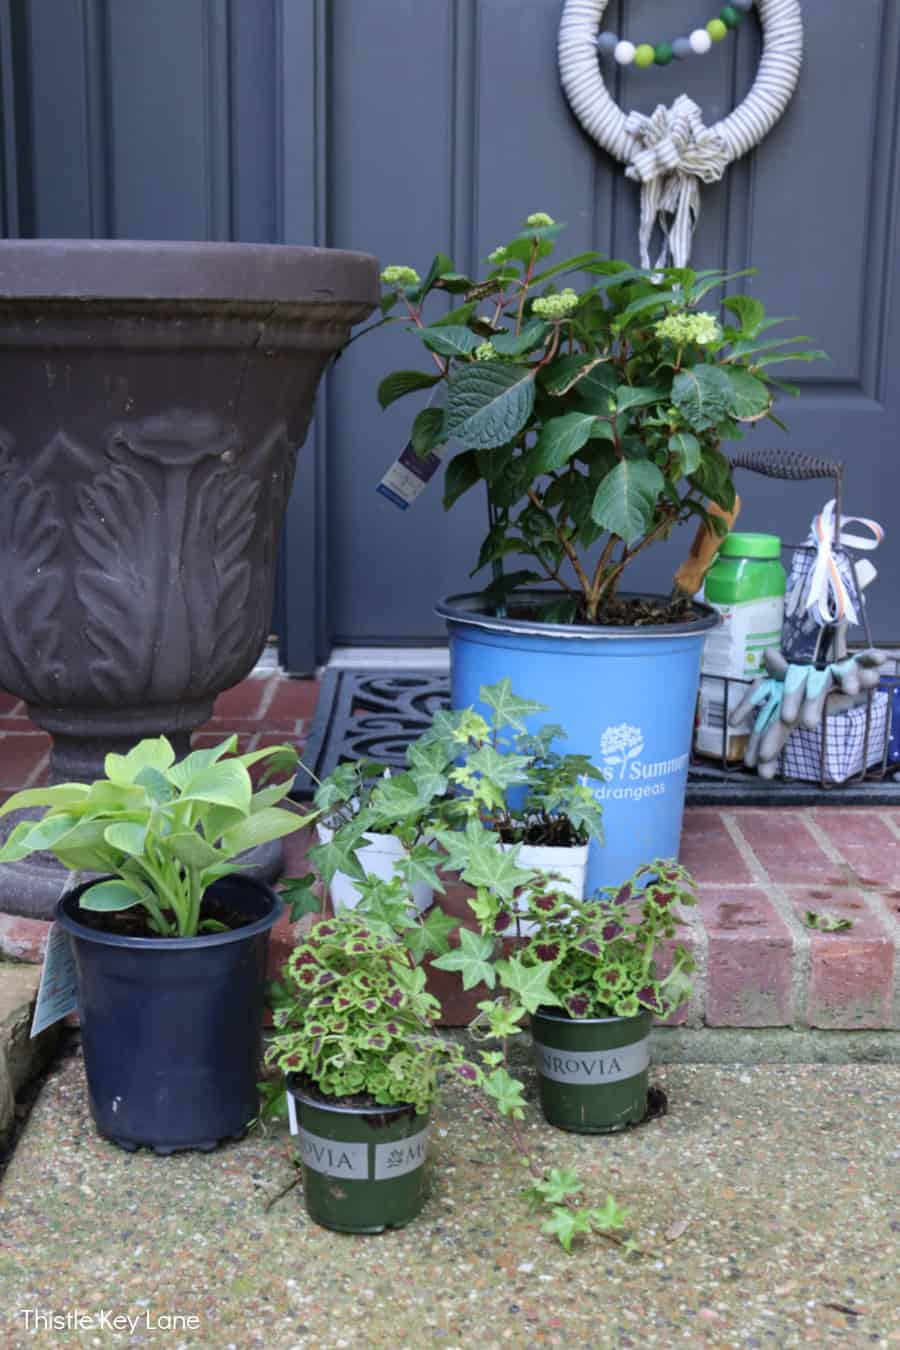 Variety of plants and a urn type garden planter. Updating A Porch Planter For Spring.